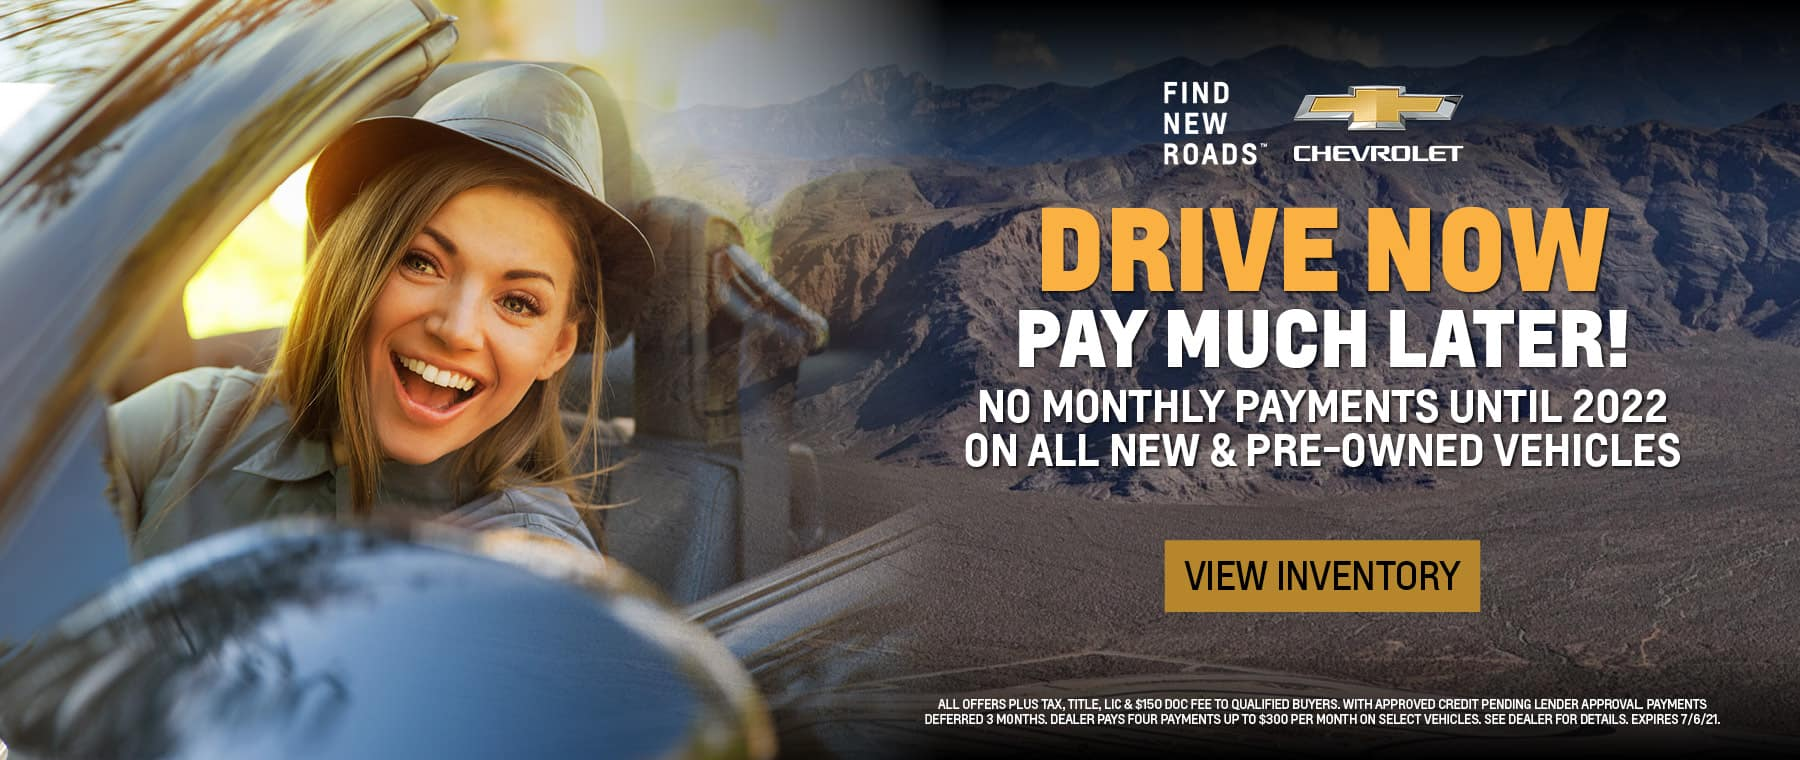 Drive Now Pay Much Later